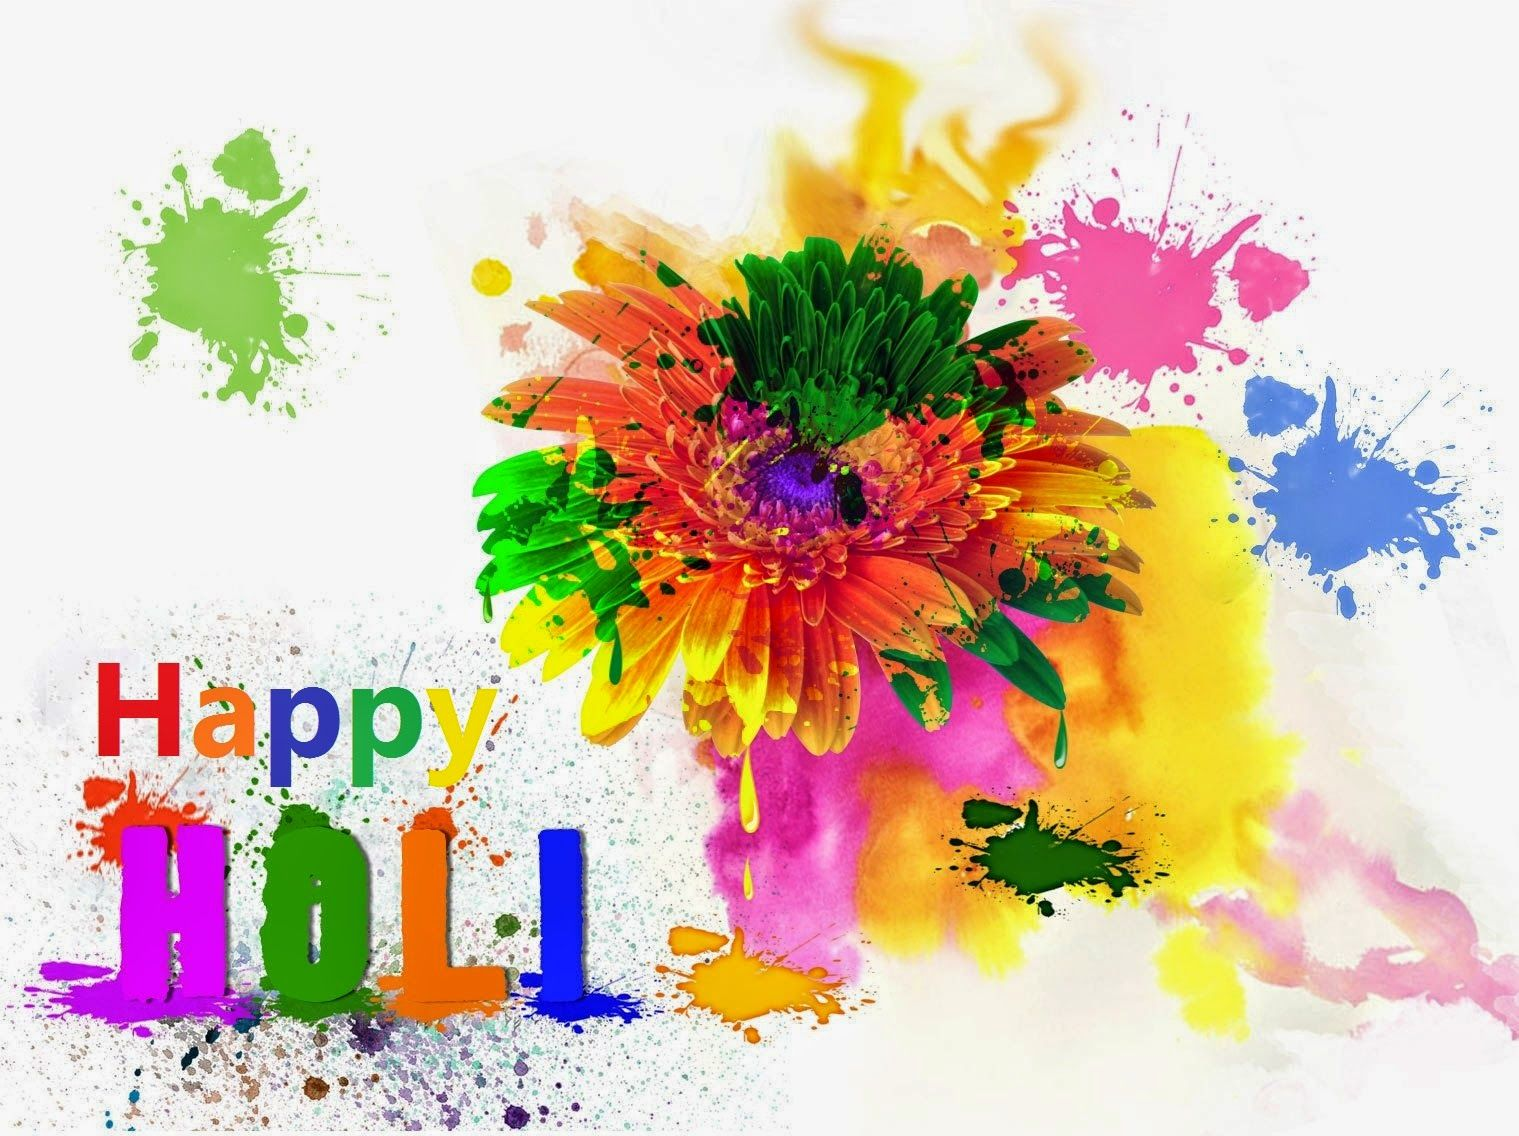 Happy holi wallpaper Happy holi full hd wallpaper Download 1519x1136